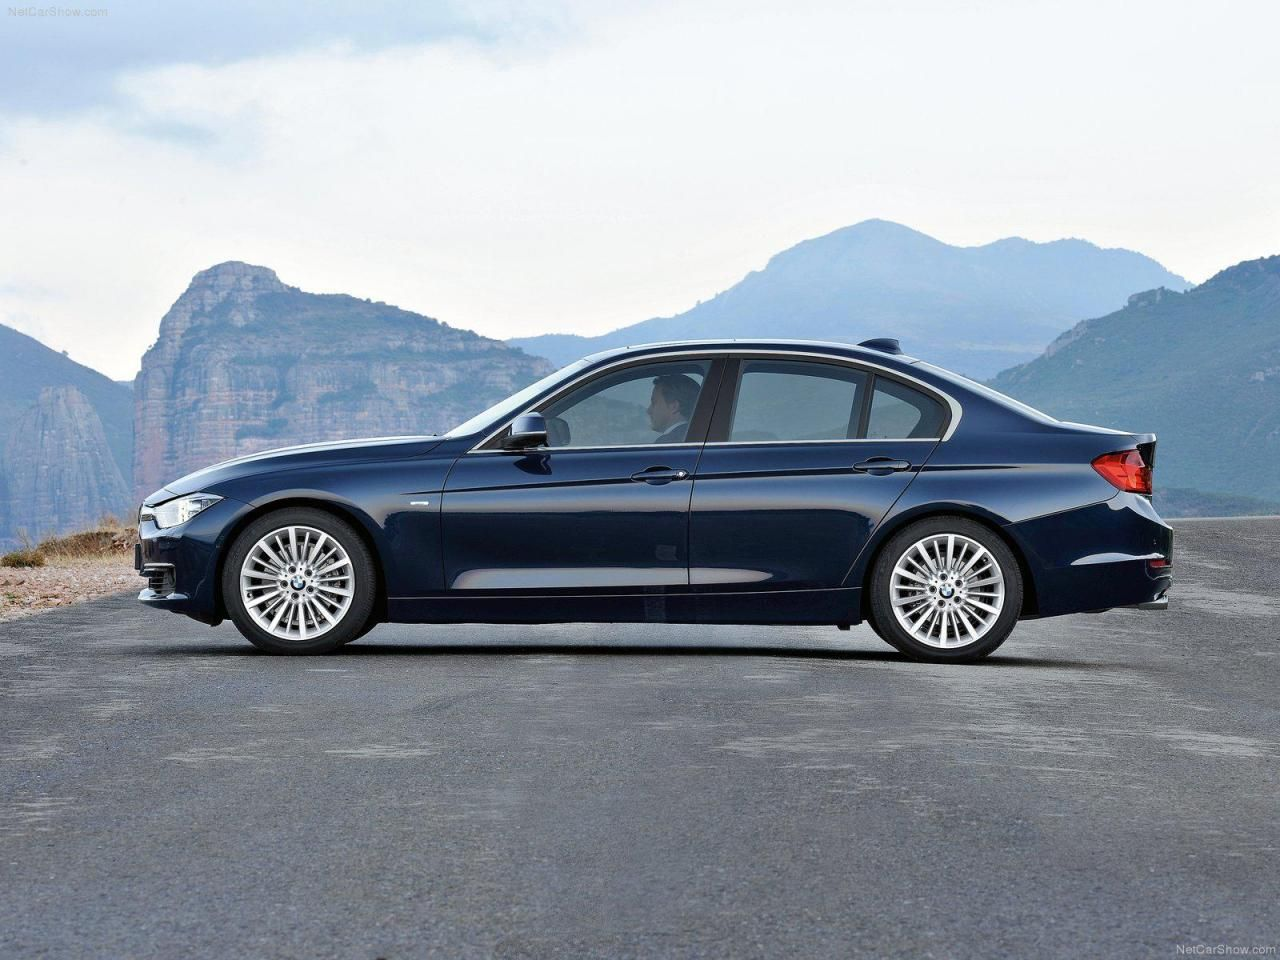 The BMW 3 Series, my current dream car (navy blue). It's not too flashy, four-door (for the fam, friends, and roadies), and still drives like a race car.   I also like the 325i, the 335i, the Audi A3, A4, and S4 as well as the Lexus IS, and RS.  I guess I just like German engineering.